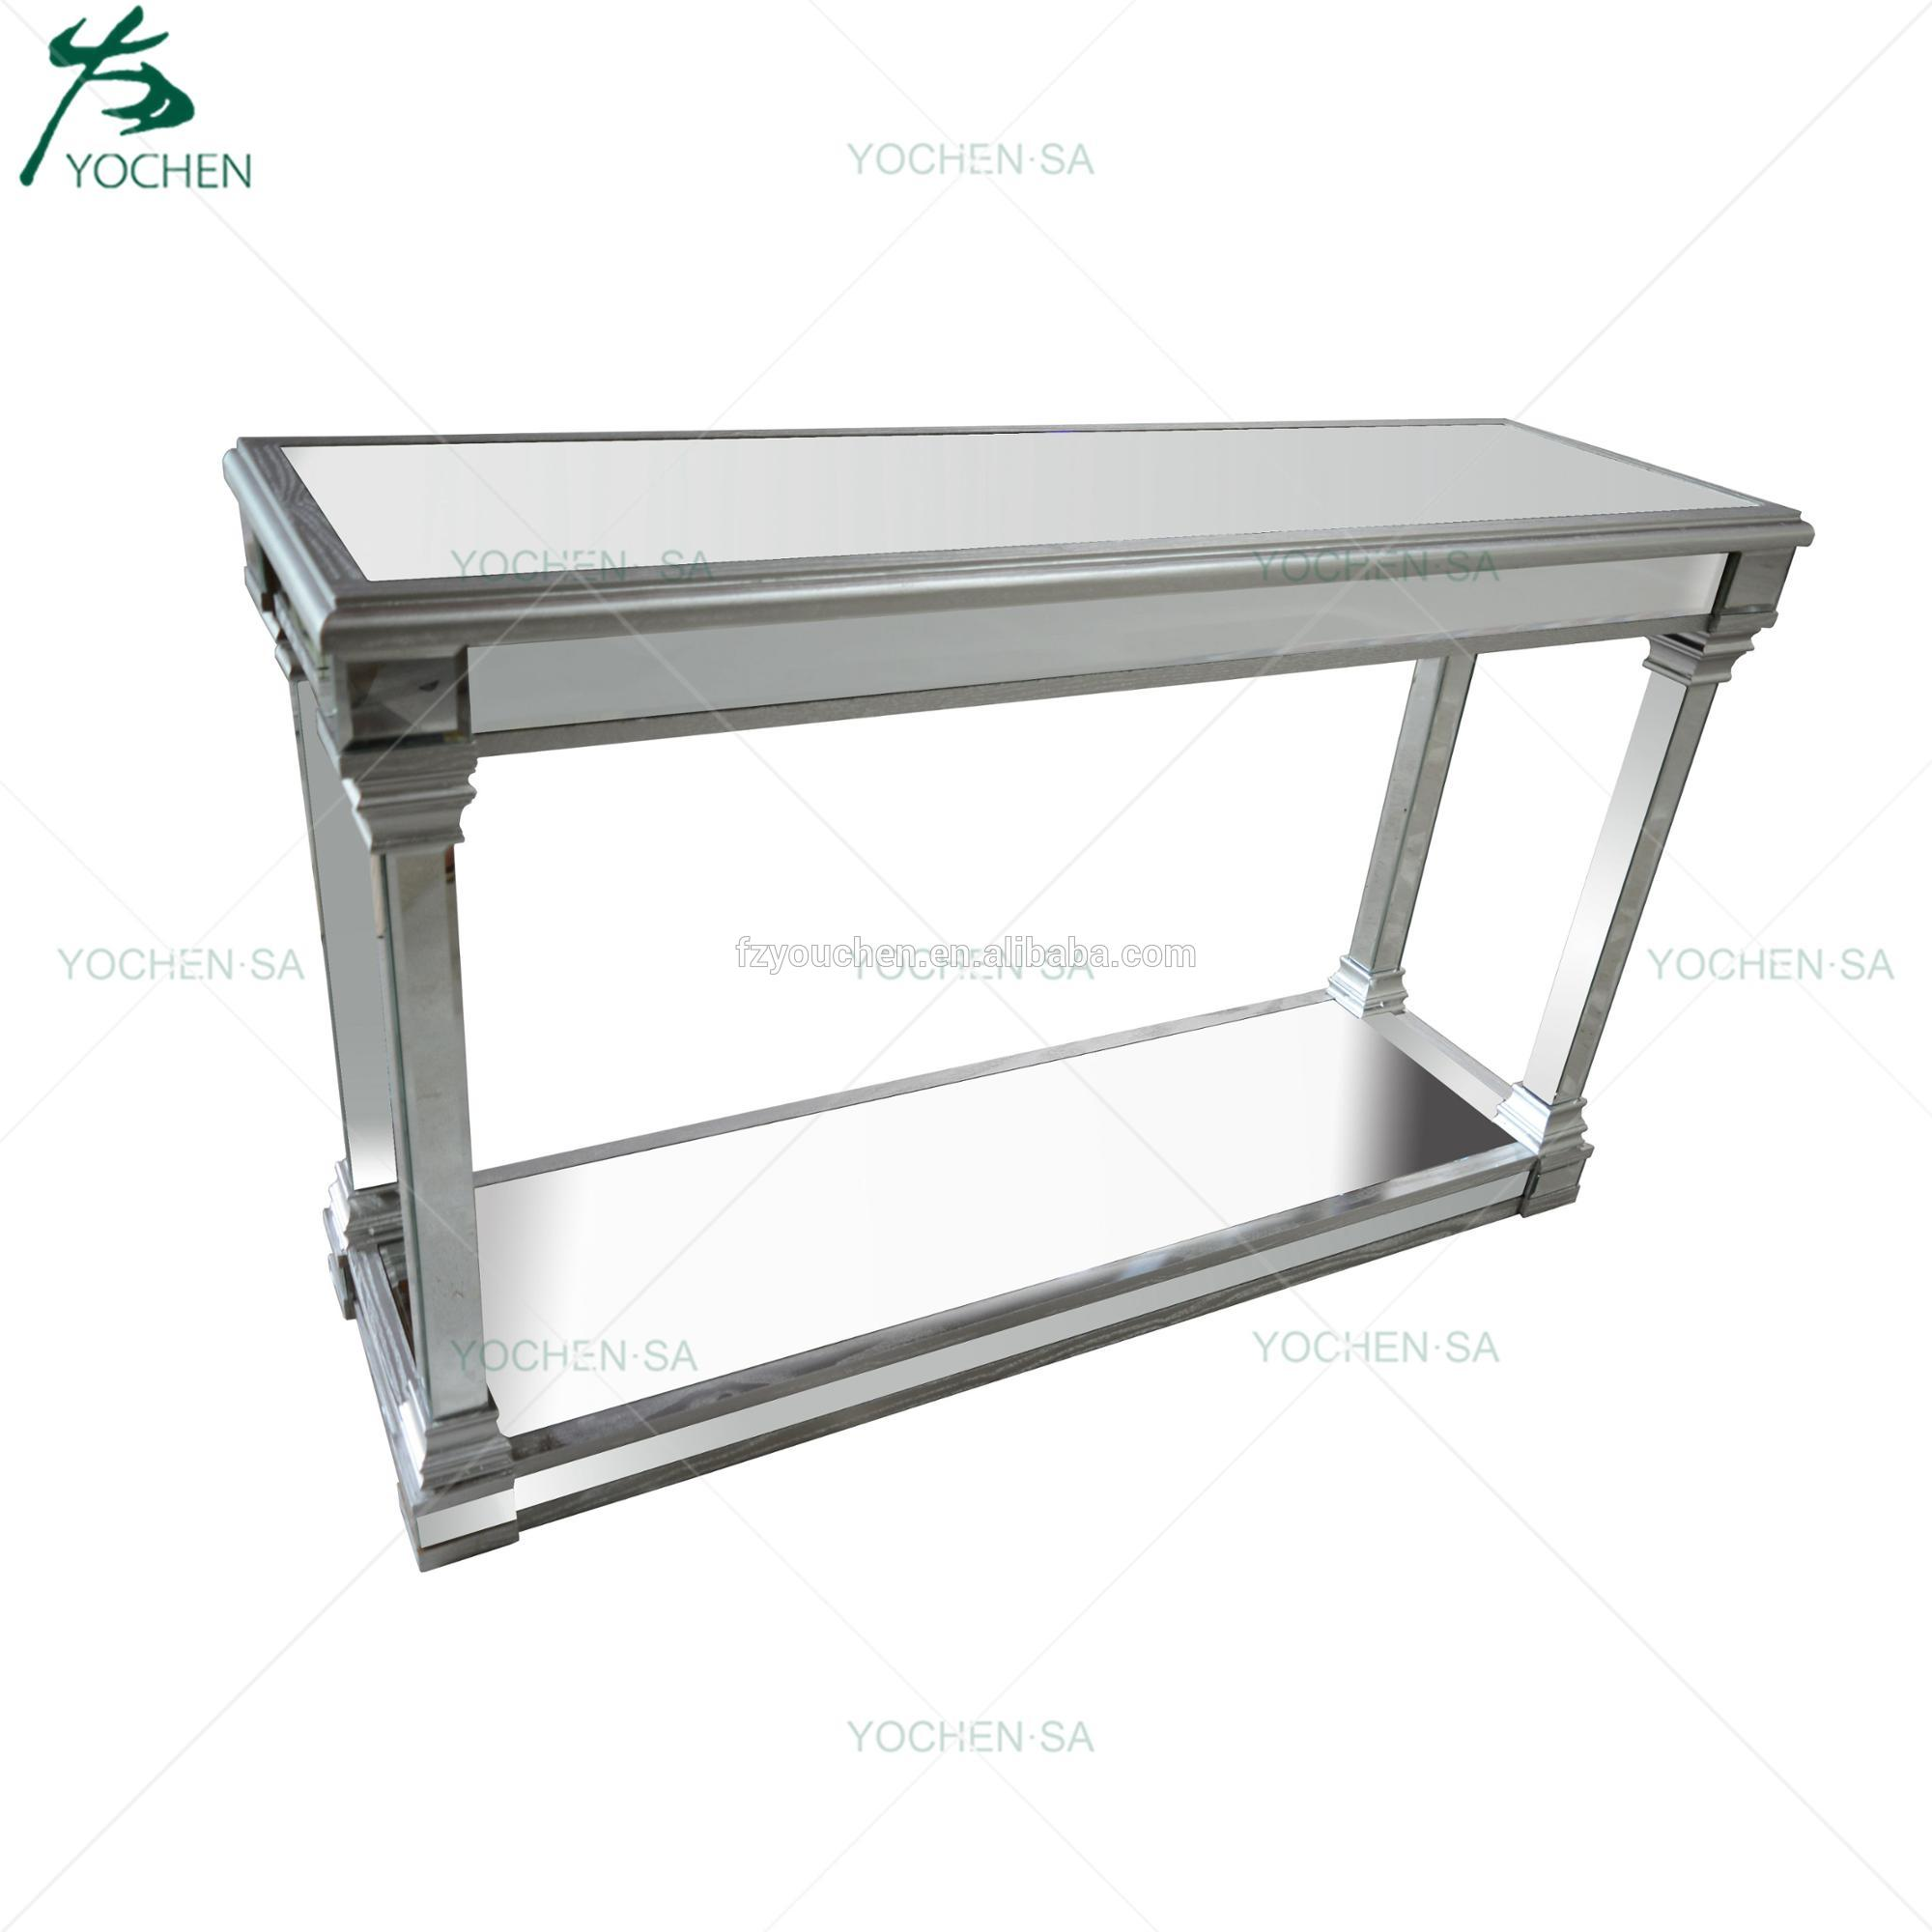 Mirrored Silver Trim Console Table Mirror Furniture with One Shelf